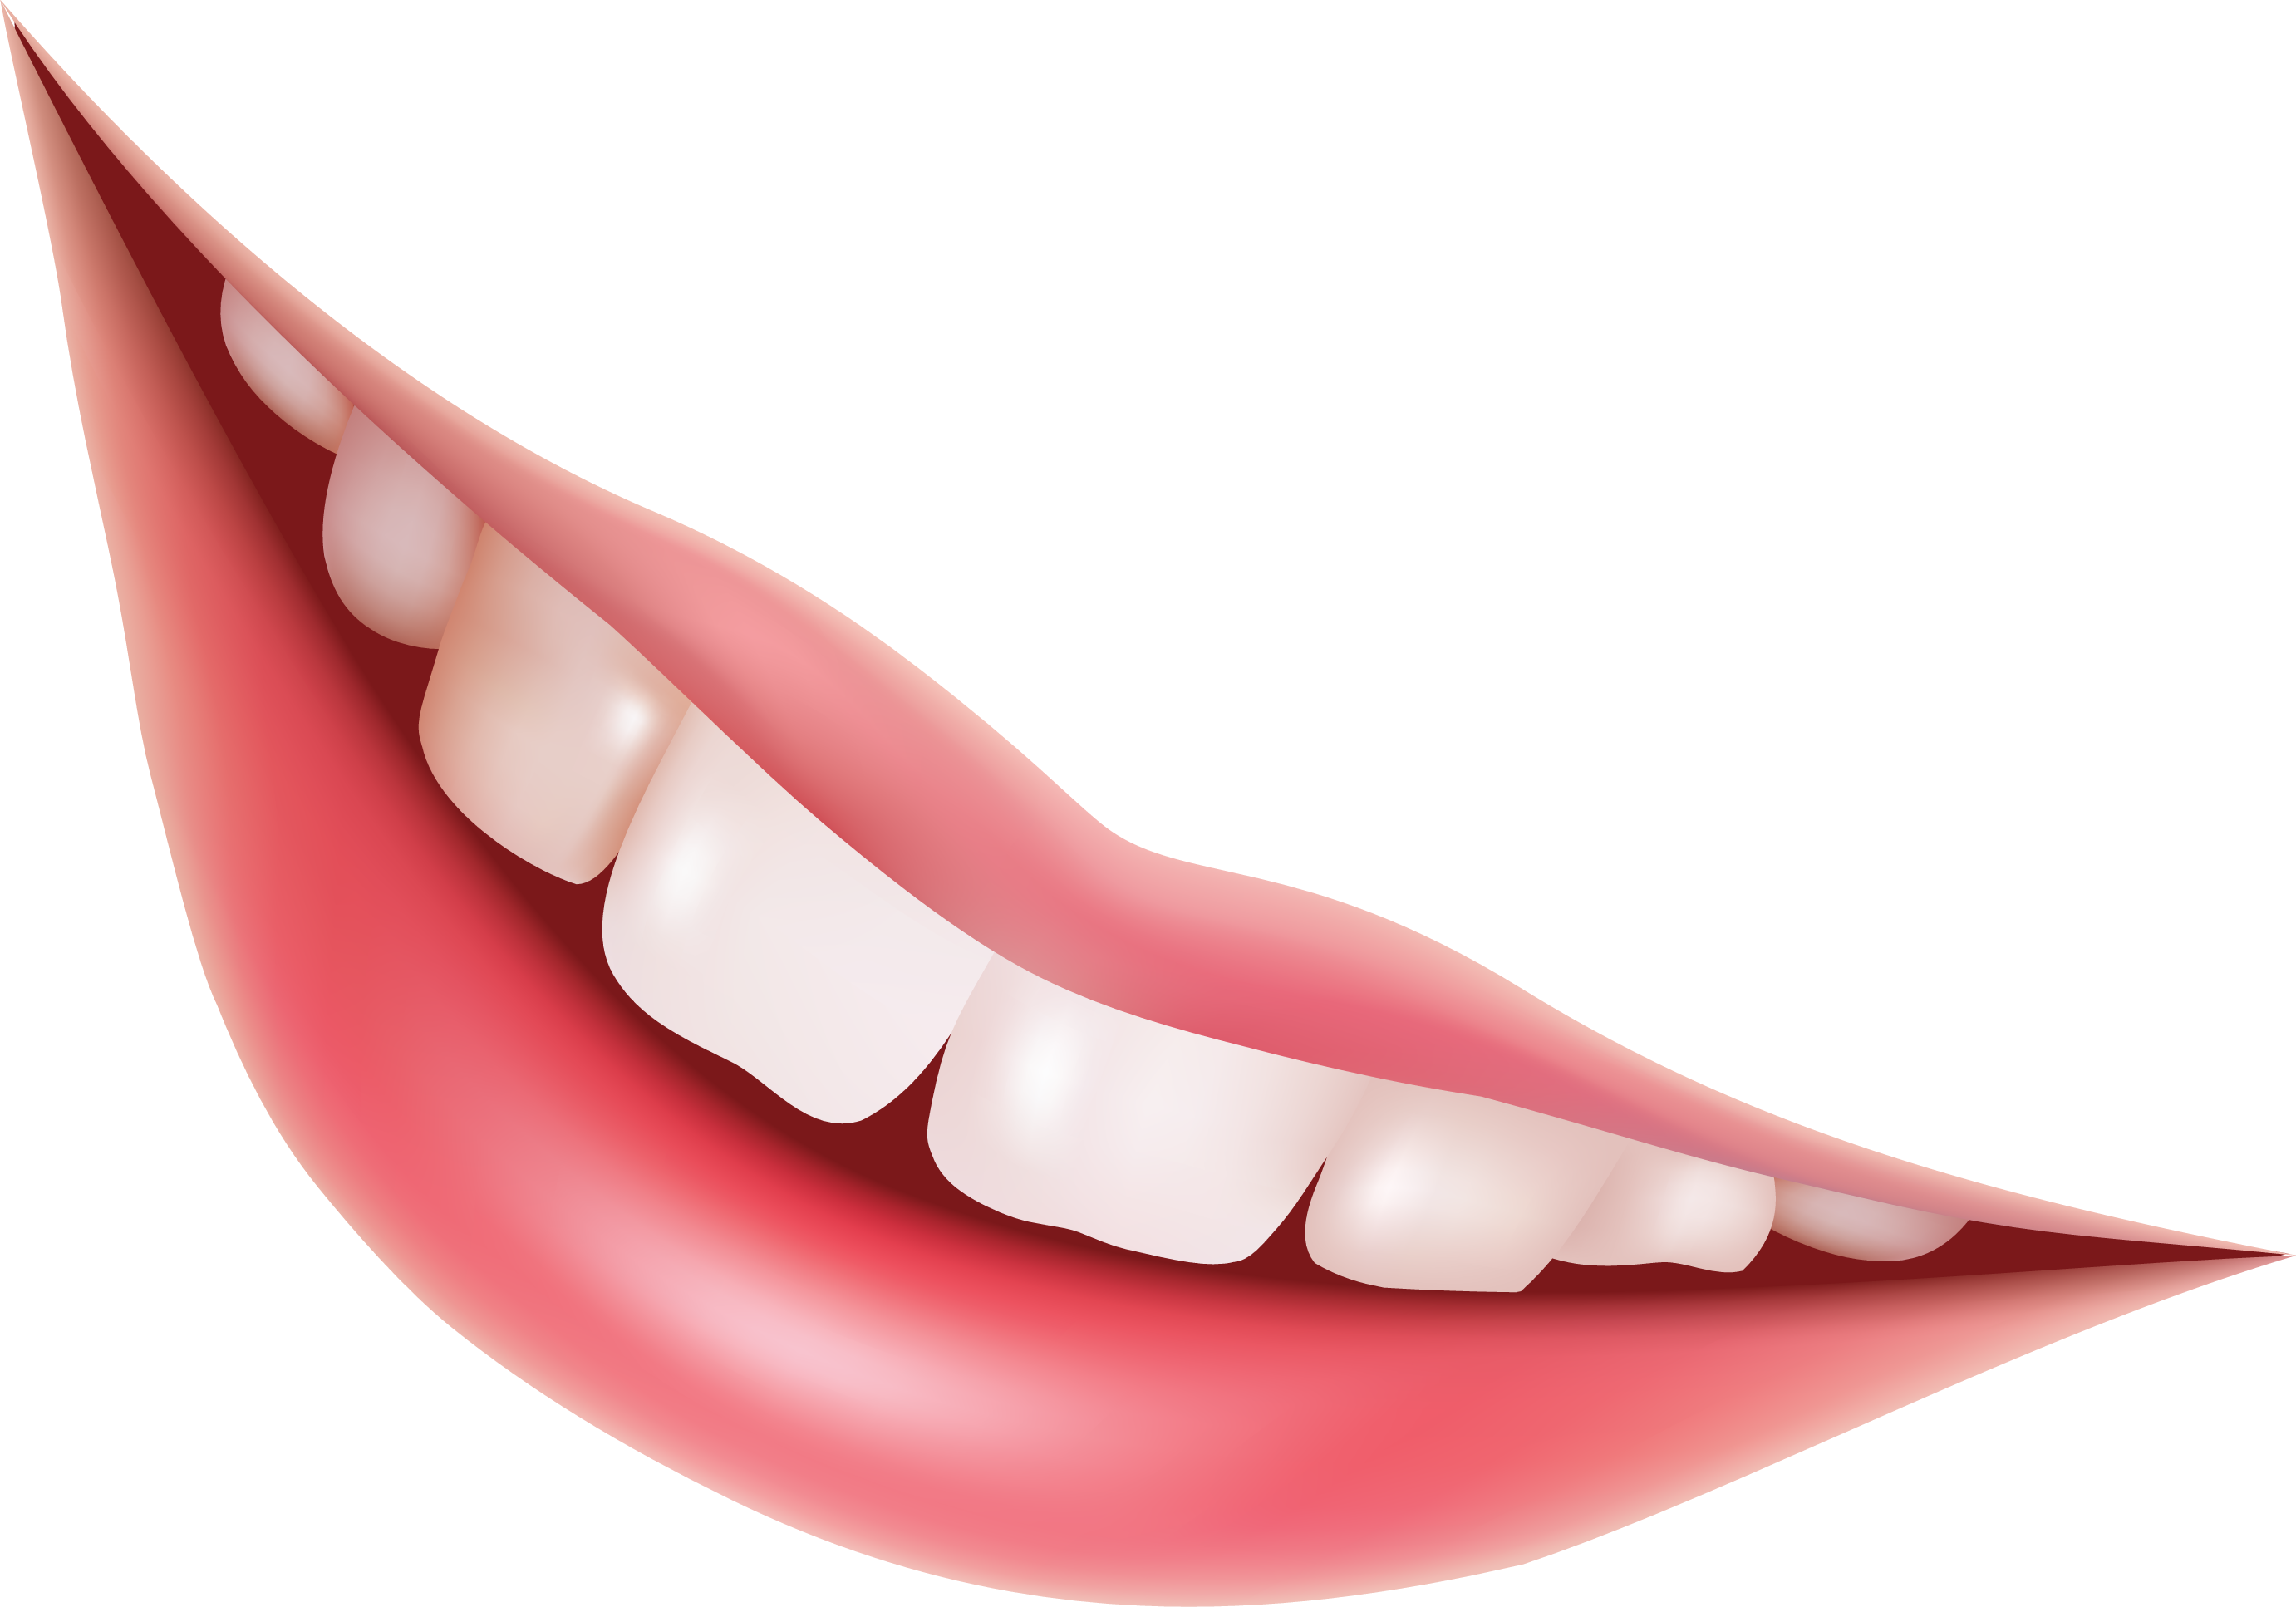 Teeth Smile Png Hd - Download   Png Hd Teeth Smile, Transparent background PNG HD thumbnail